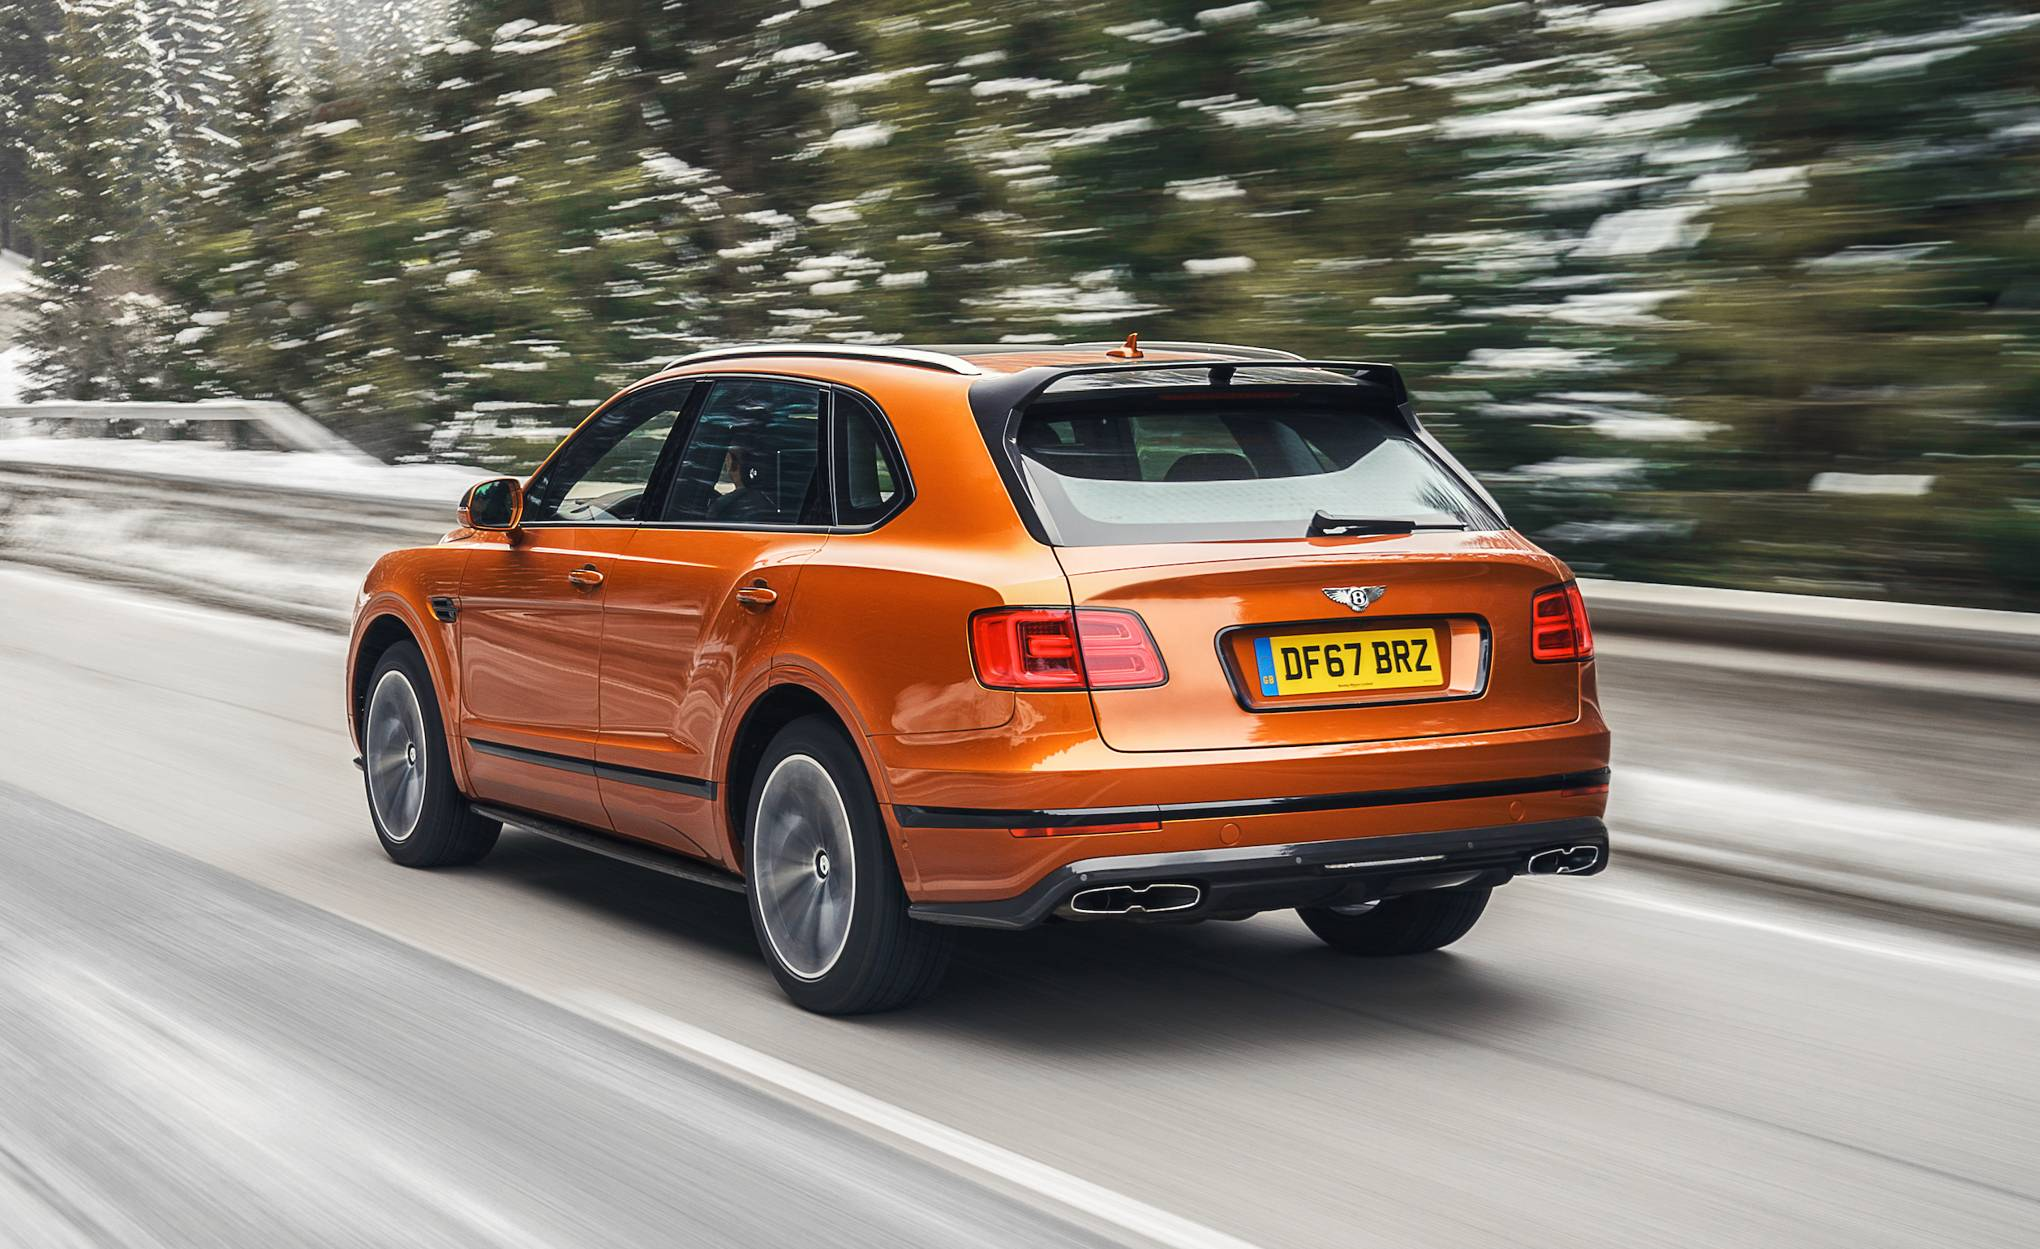 Bentley Bentayga V8 The Next Bentley Could Be Fully Autonomous Wired Uk